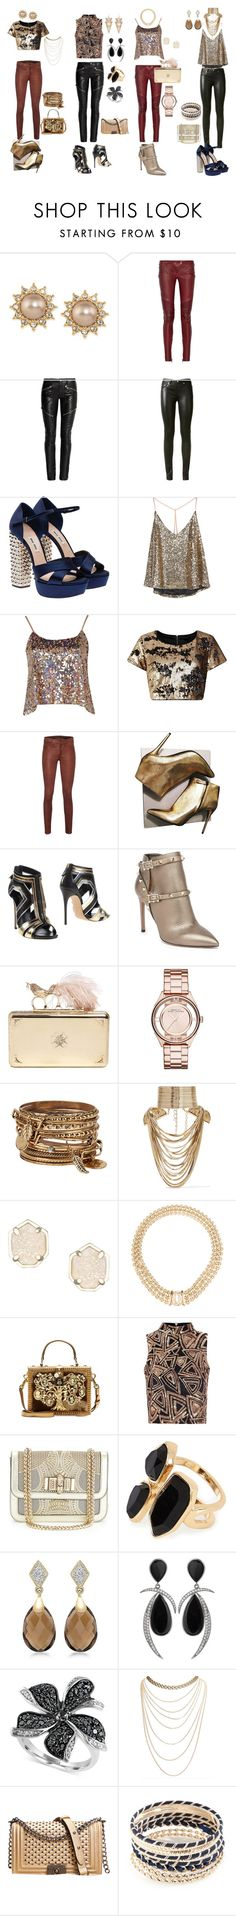 """369"" by violetwednesday ❤ liked on Polyvore featuring Carolee, Balmain, Yves Saint Laurent, Miu Miu, Boohoo, Dolly & Delicious, rag & bone, Alexander McQueen, Casadei and Valentino"